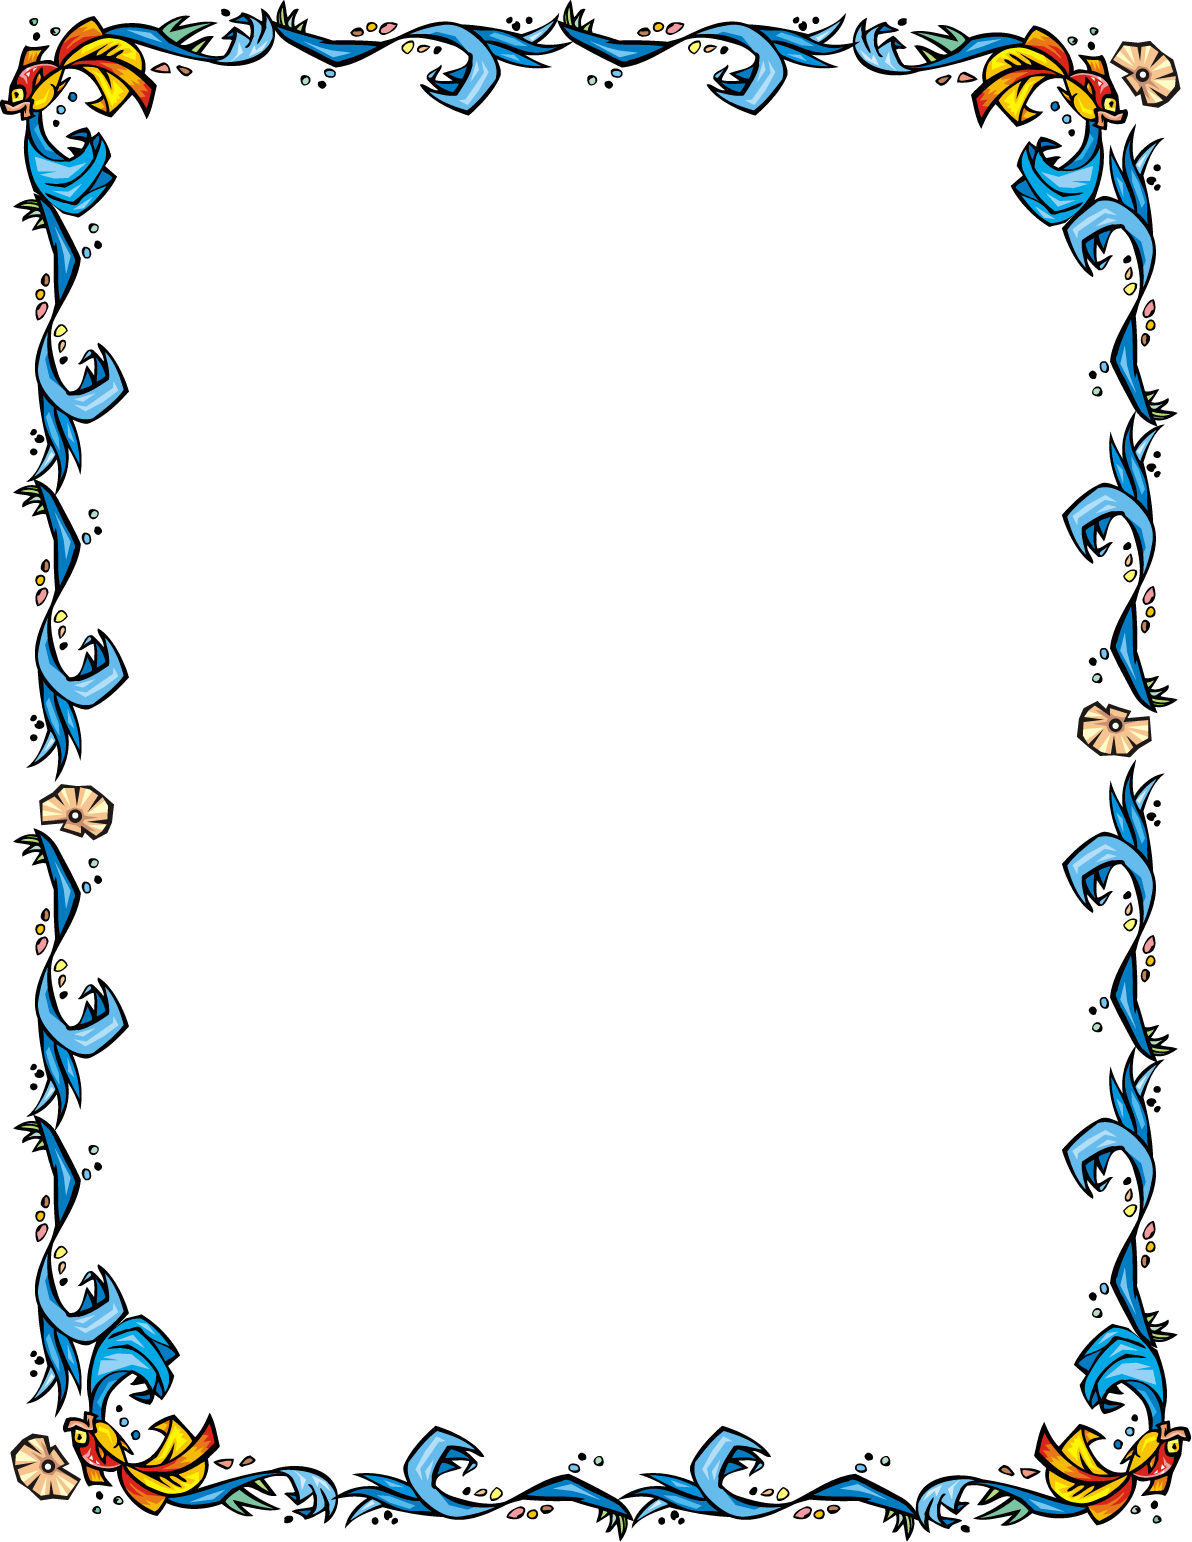 Fish border clipart clipart images gallery for free download.